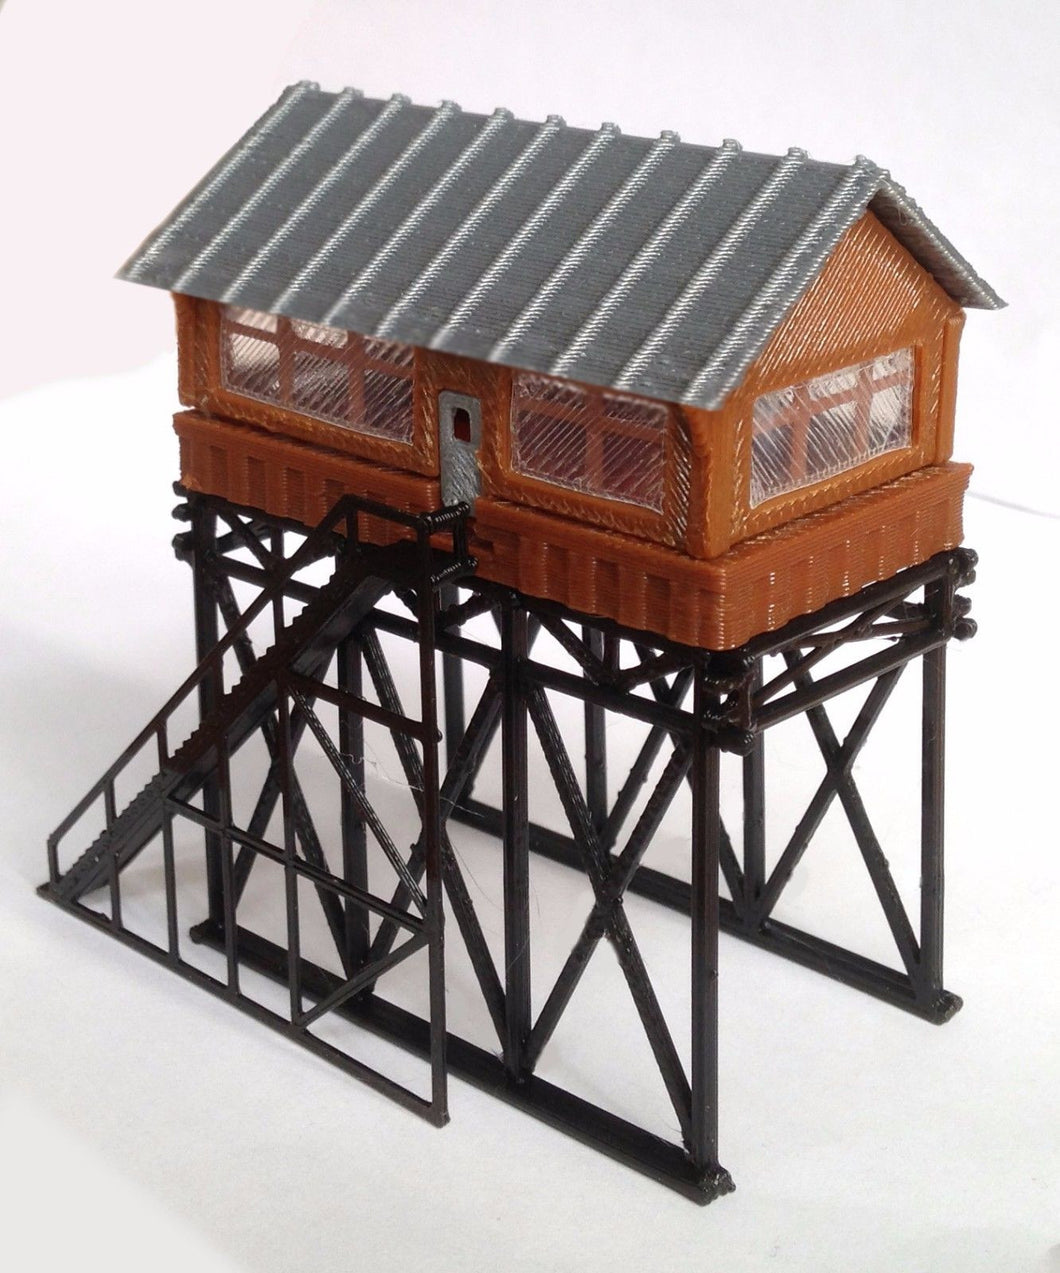 Overhead Signal Box / Tower N Scale Outland Models Train Railway Layout Station